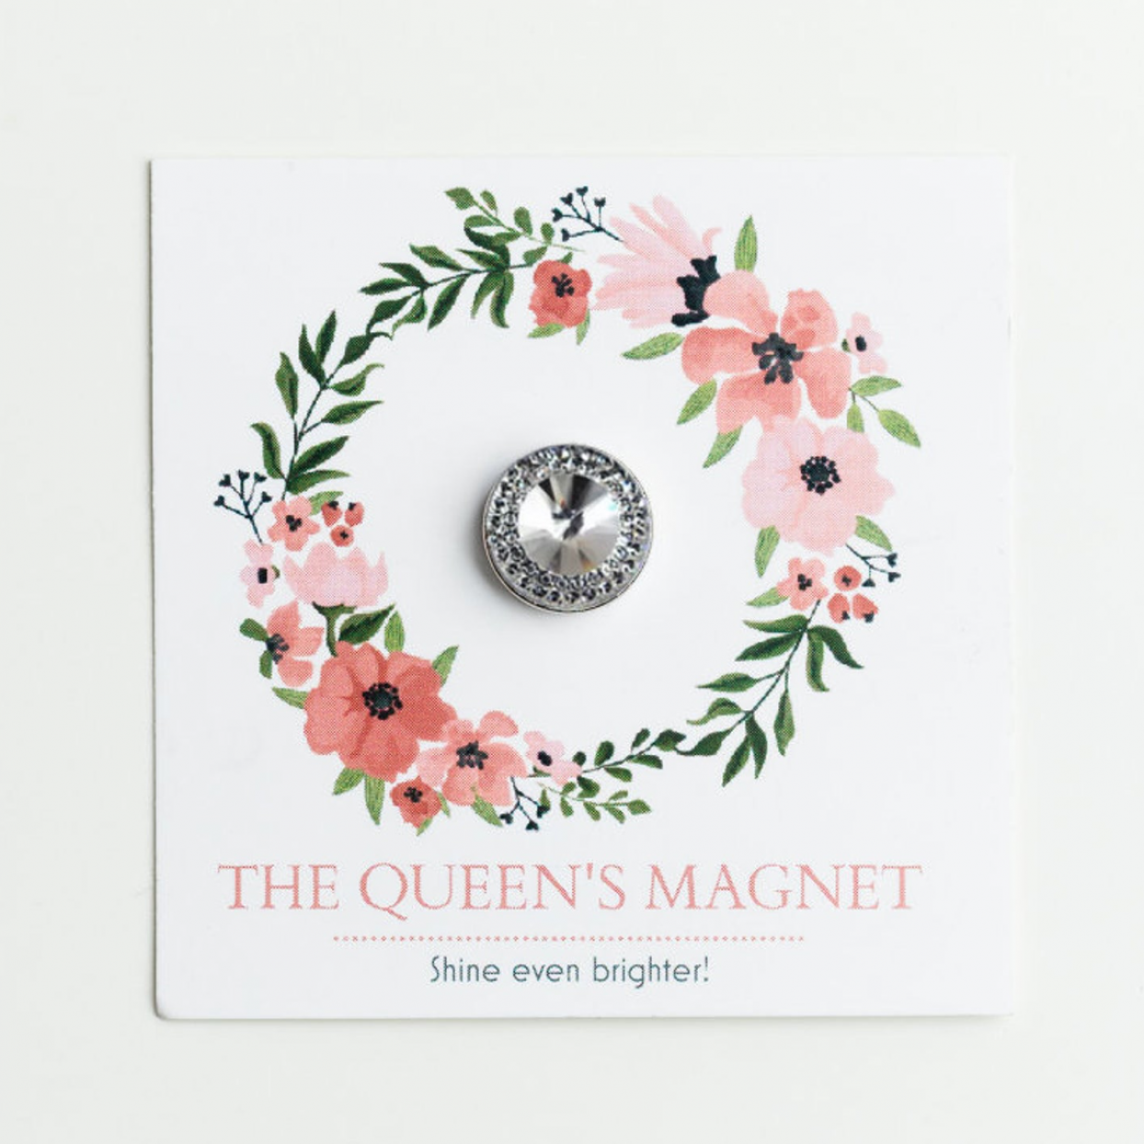 Crystal Queen: Magnet for Pageant Contestant Numbers, Sashes, Name Tags; Super Strong Bling Magnet from The Queen's Magnet